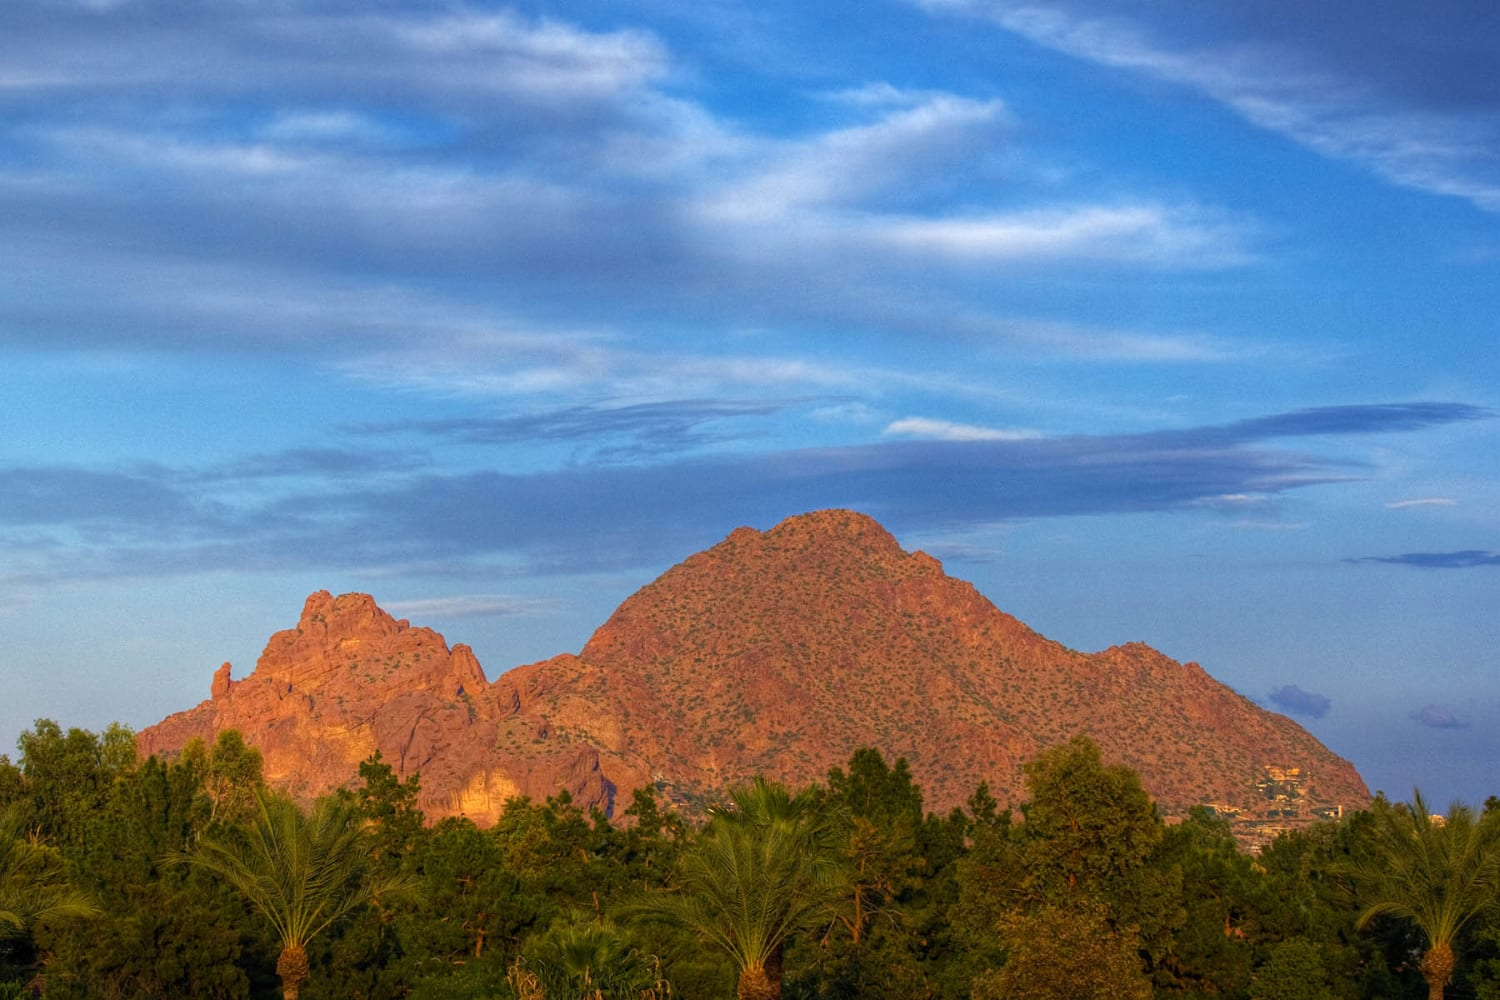 Enjoy the scenery at Cabrillo Apartments in Scottsdale, Arizona